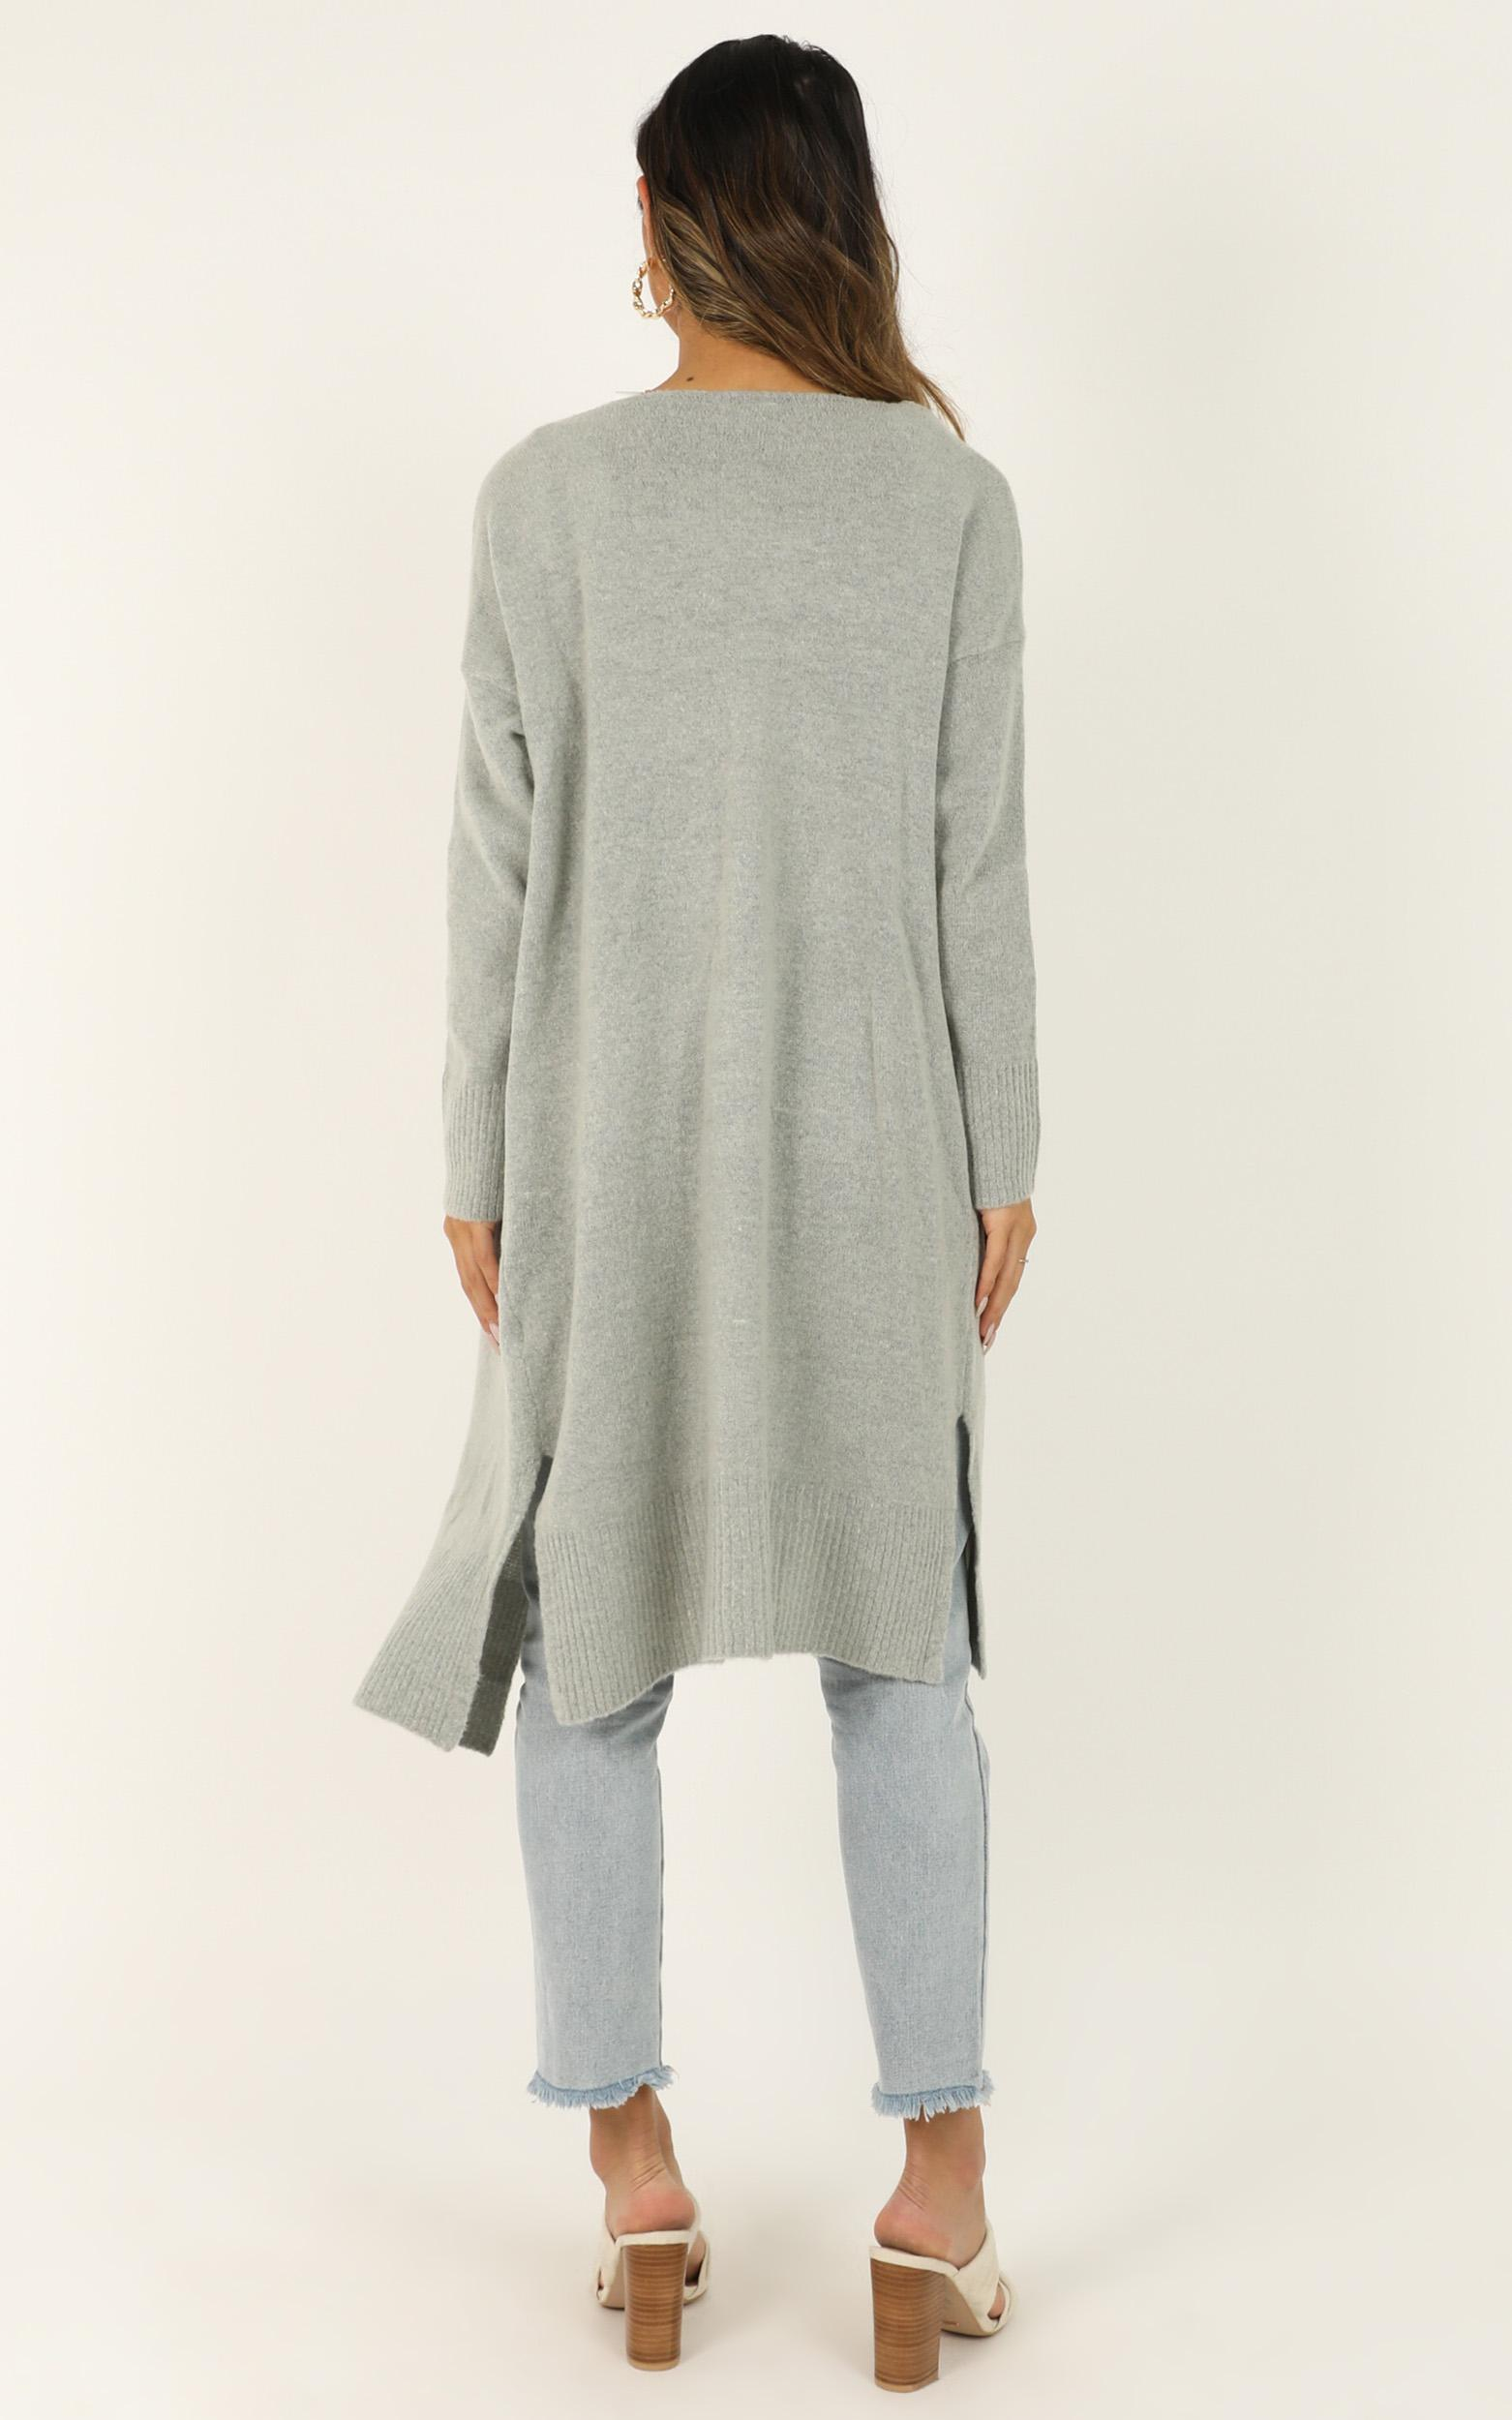 Around The Bend Cardigan in grey - 14 (XL), Grey, hi-res image number null